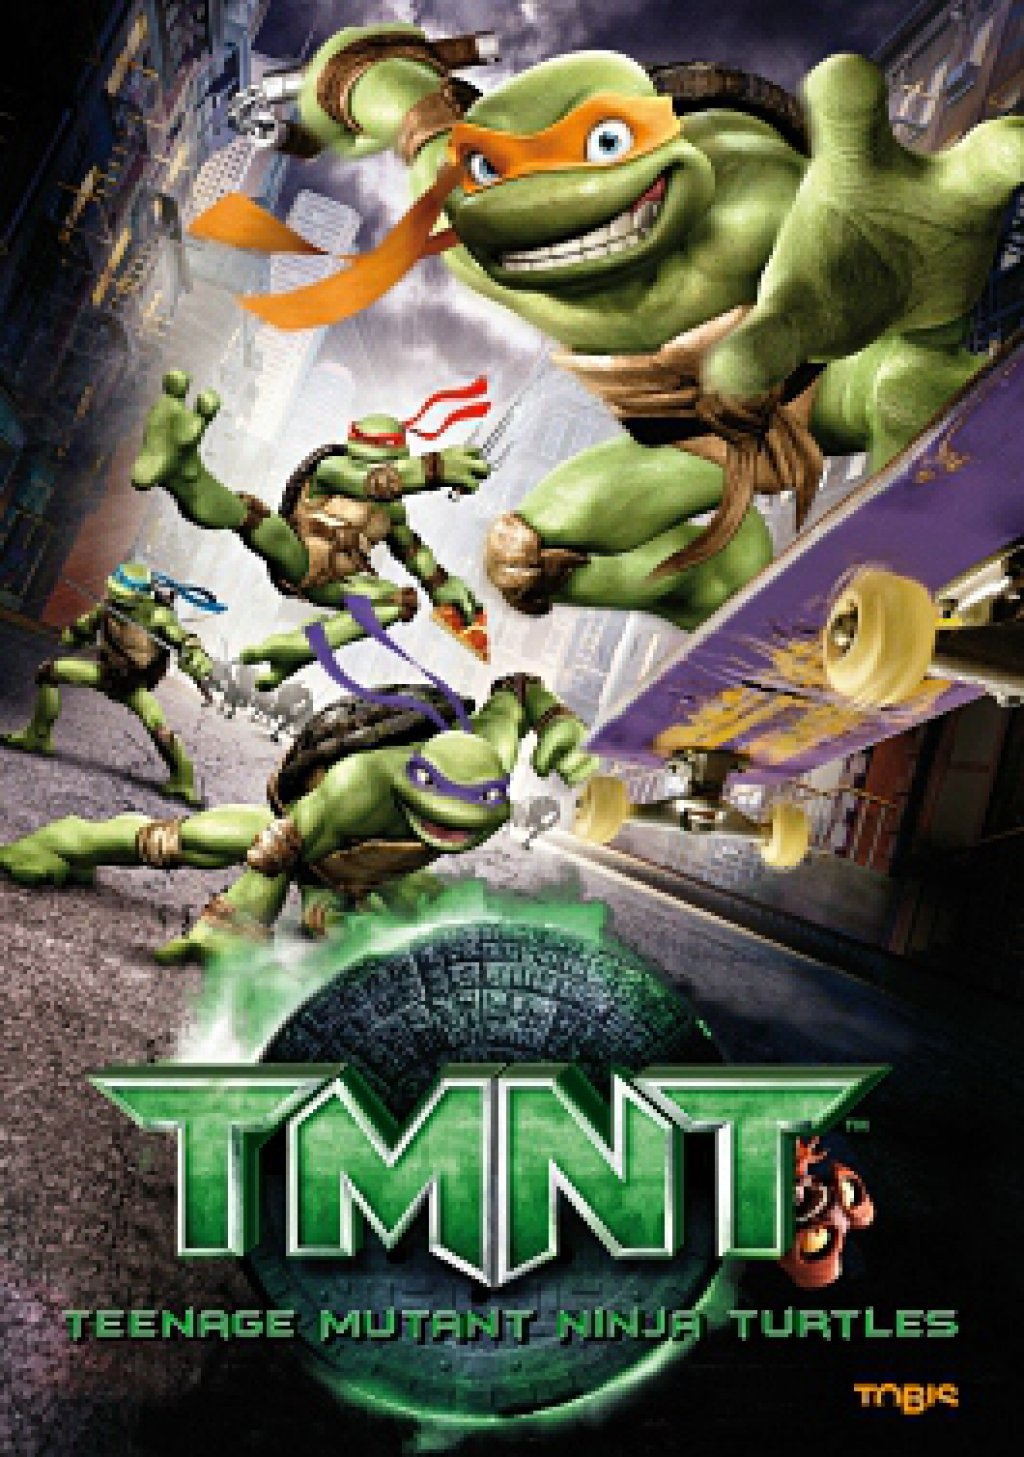 TMNT - Teenage Mutant Ninja Turtles (DVD)